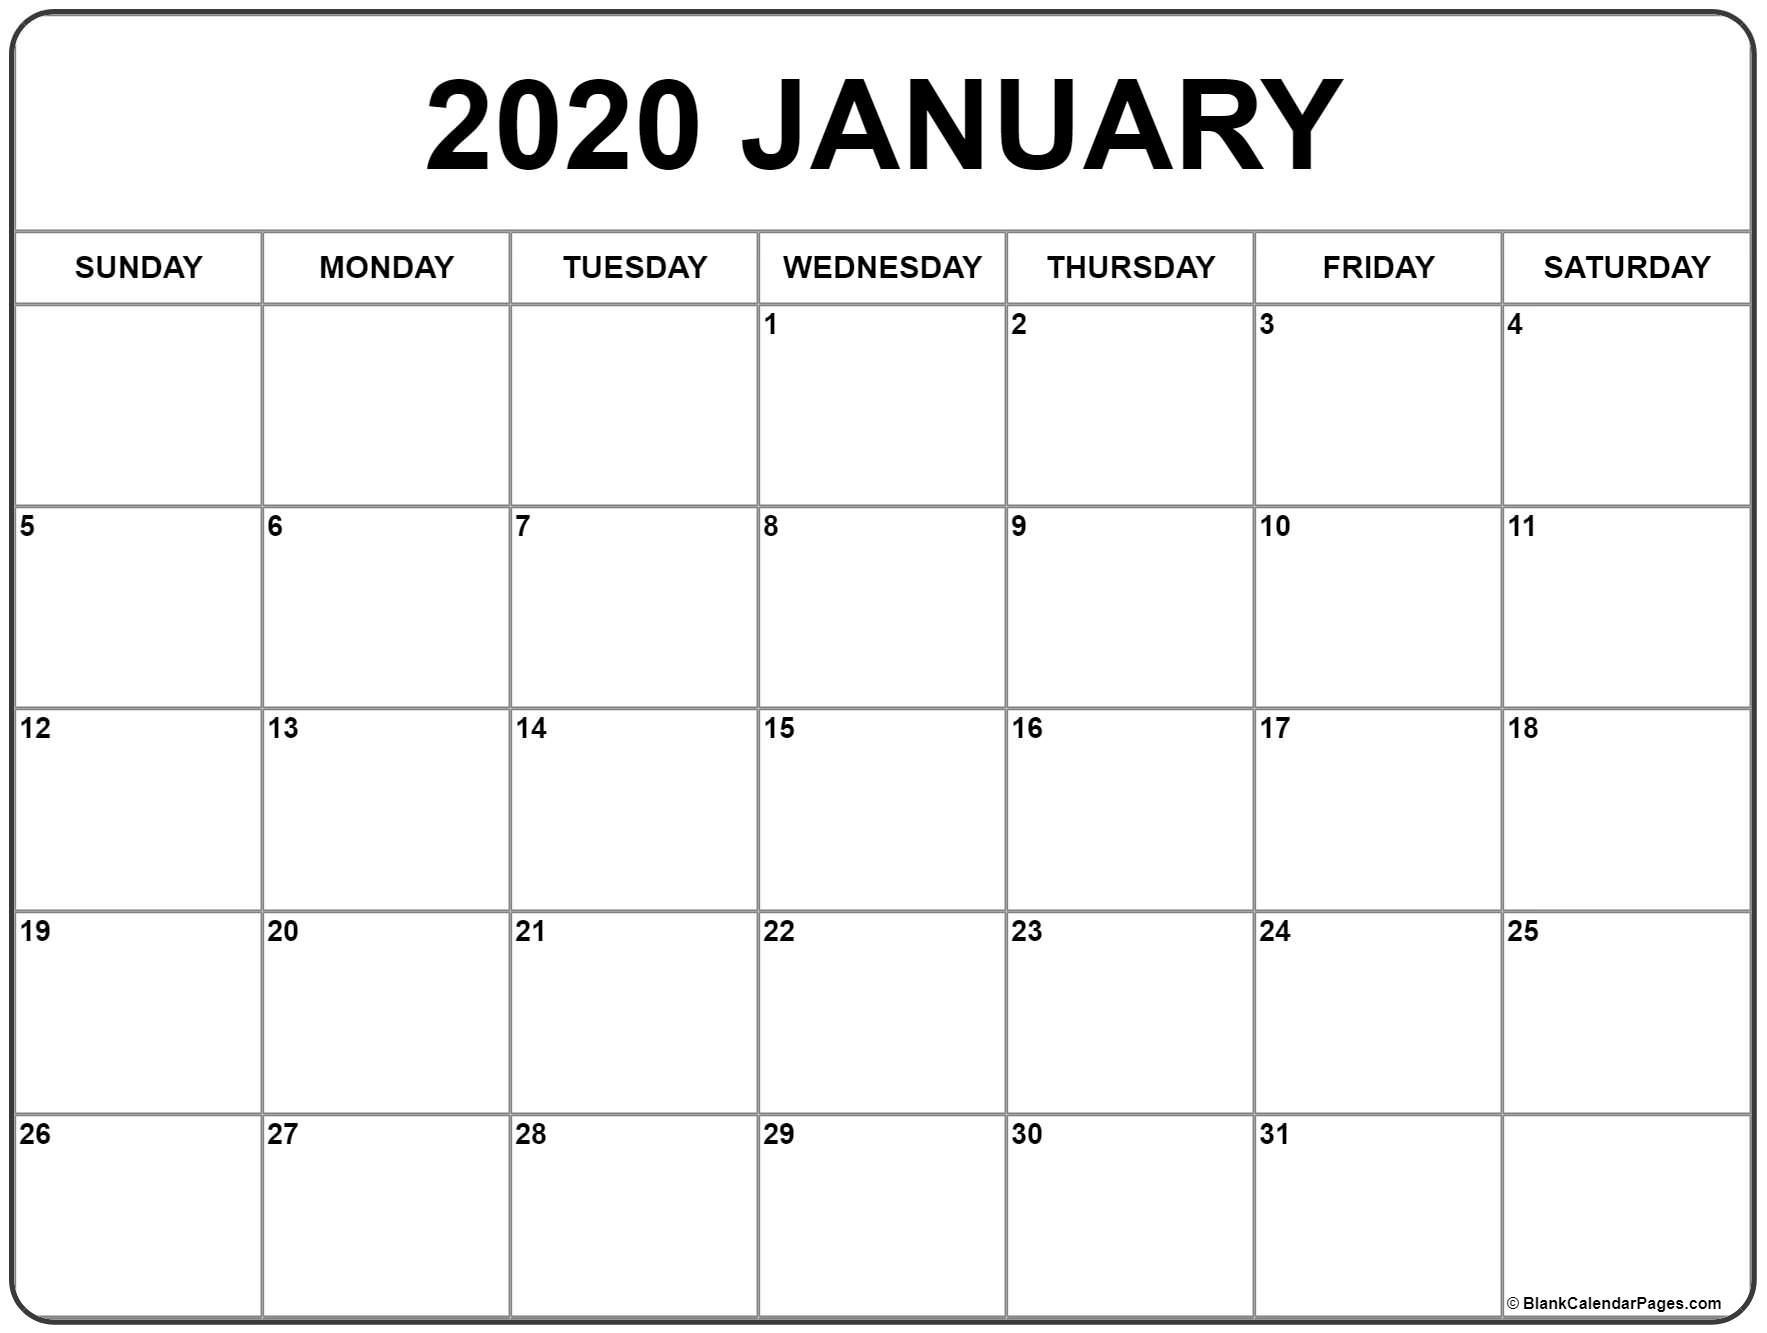 January 2020 Calendar | Free Printable Monthly Calendars  Full Page Monthly Calendar Printable 2020